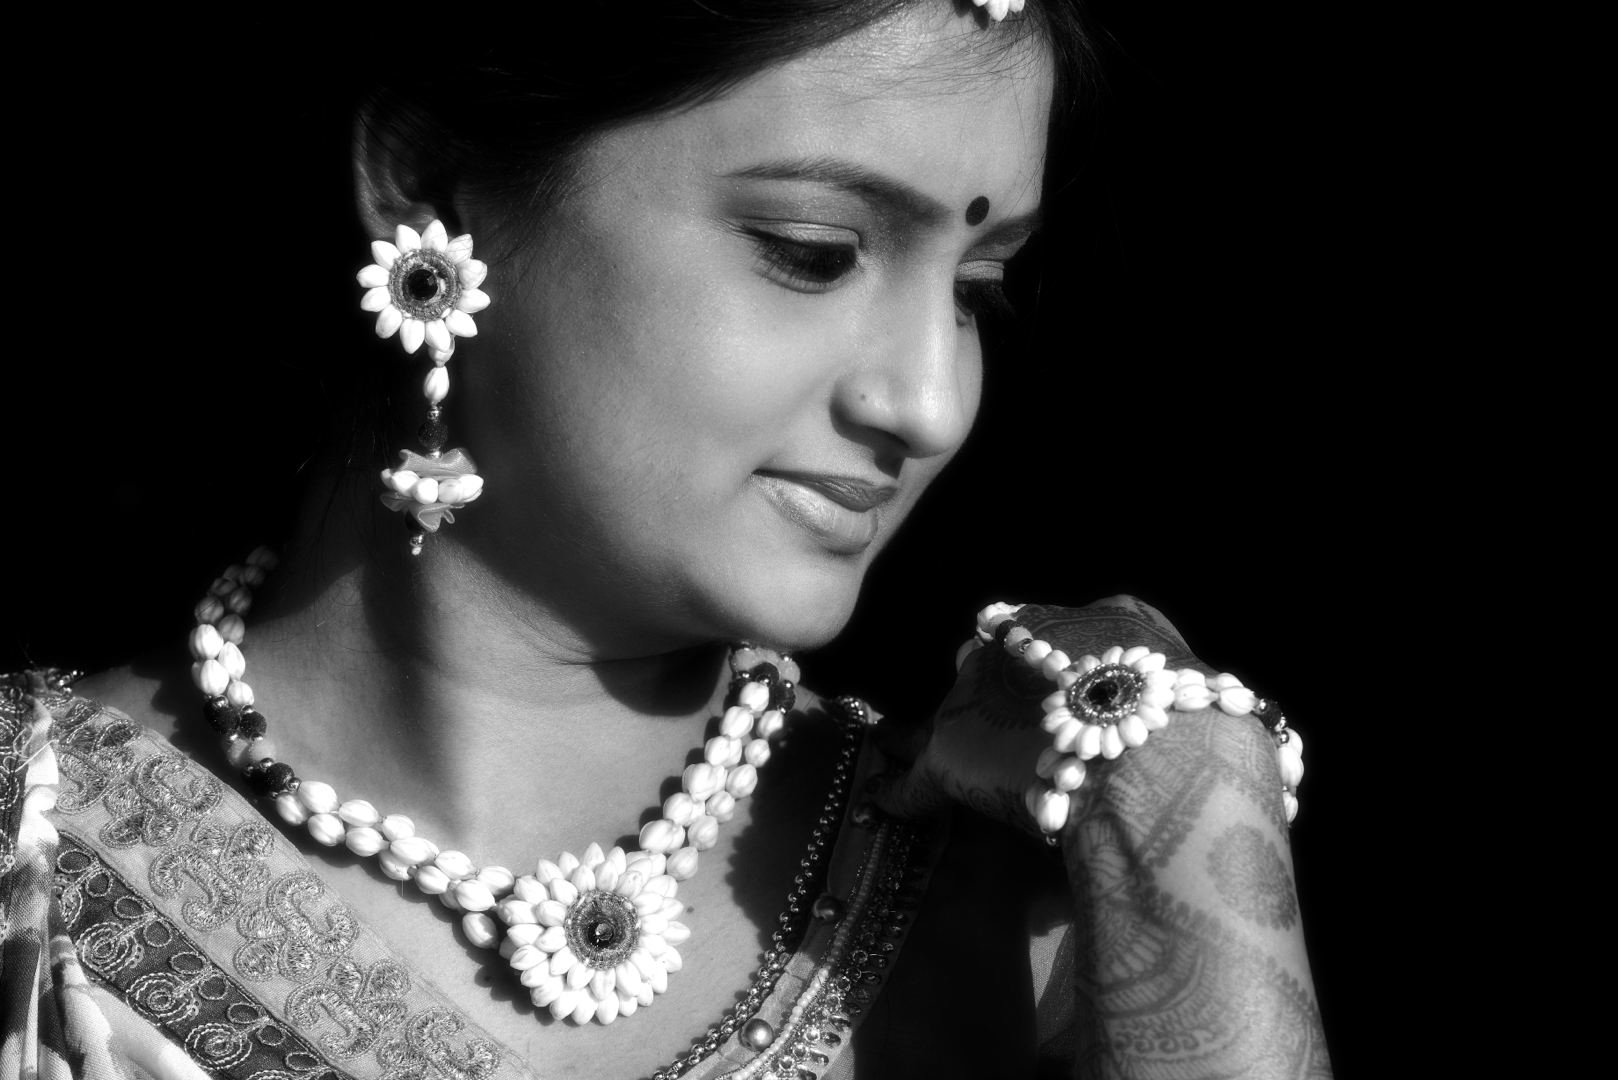 Black and white photography black and white photos black and white portrait photography vadodara gujarat india ranu mistry photography